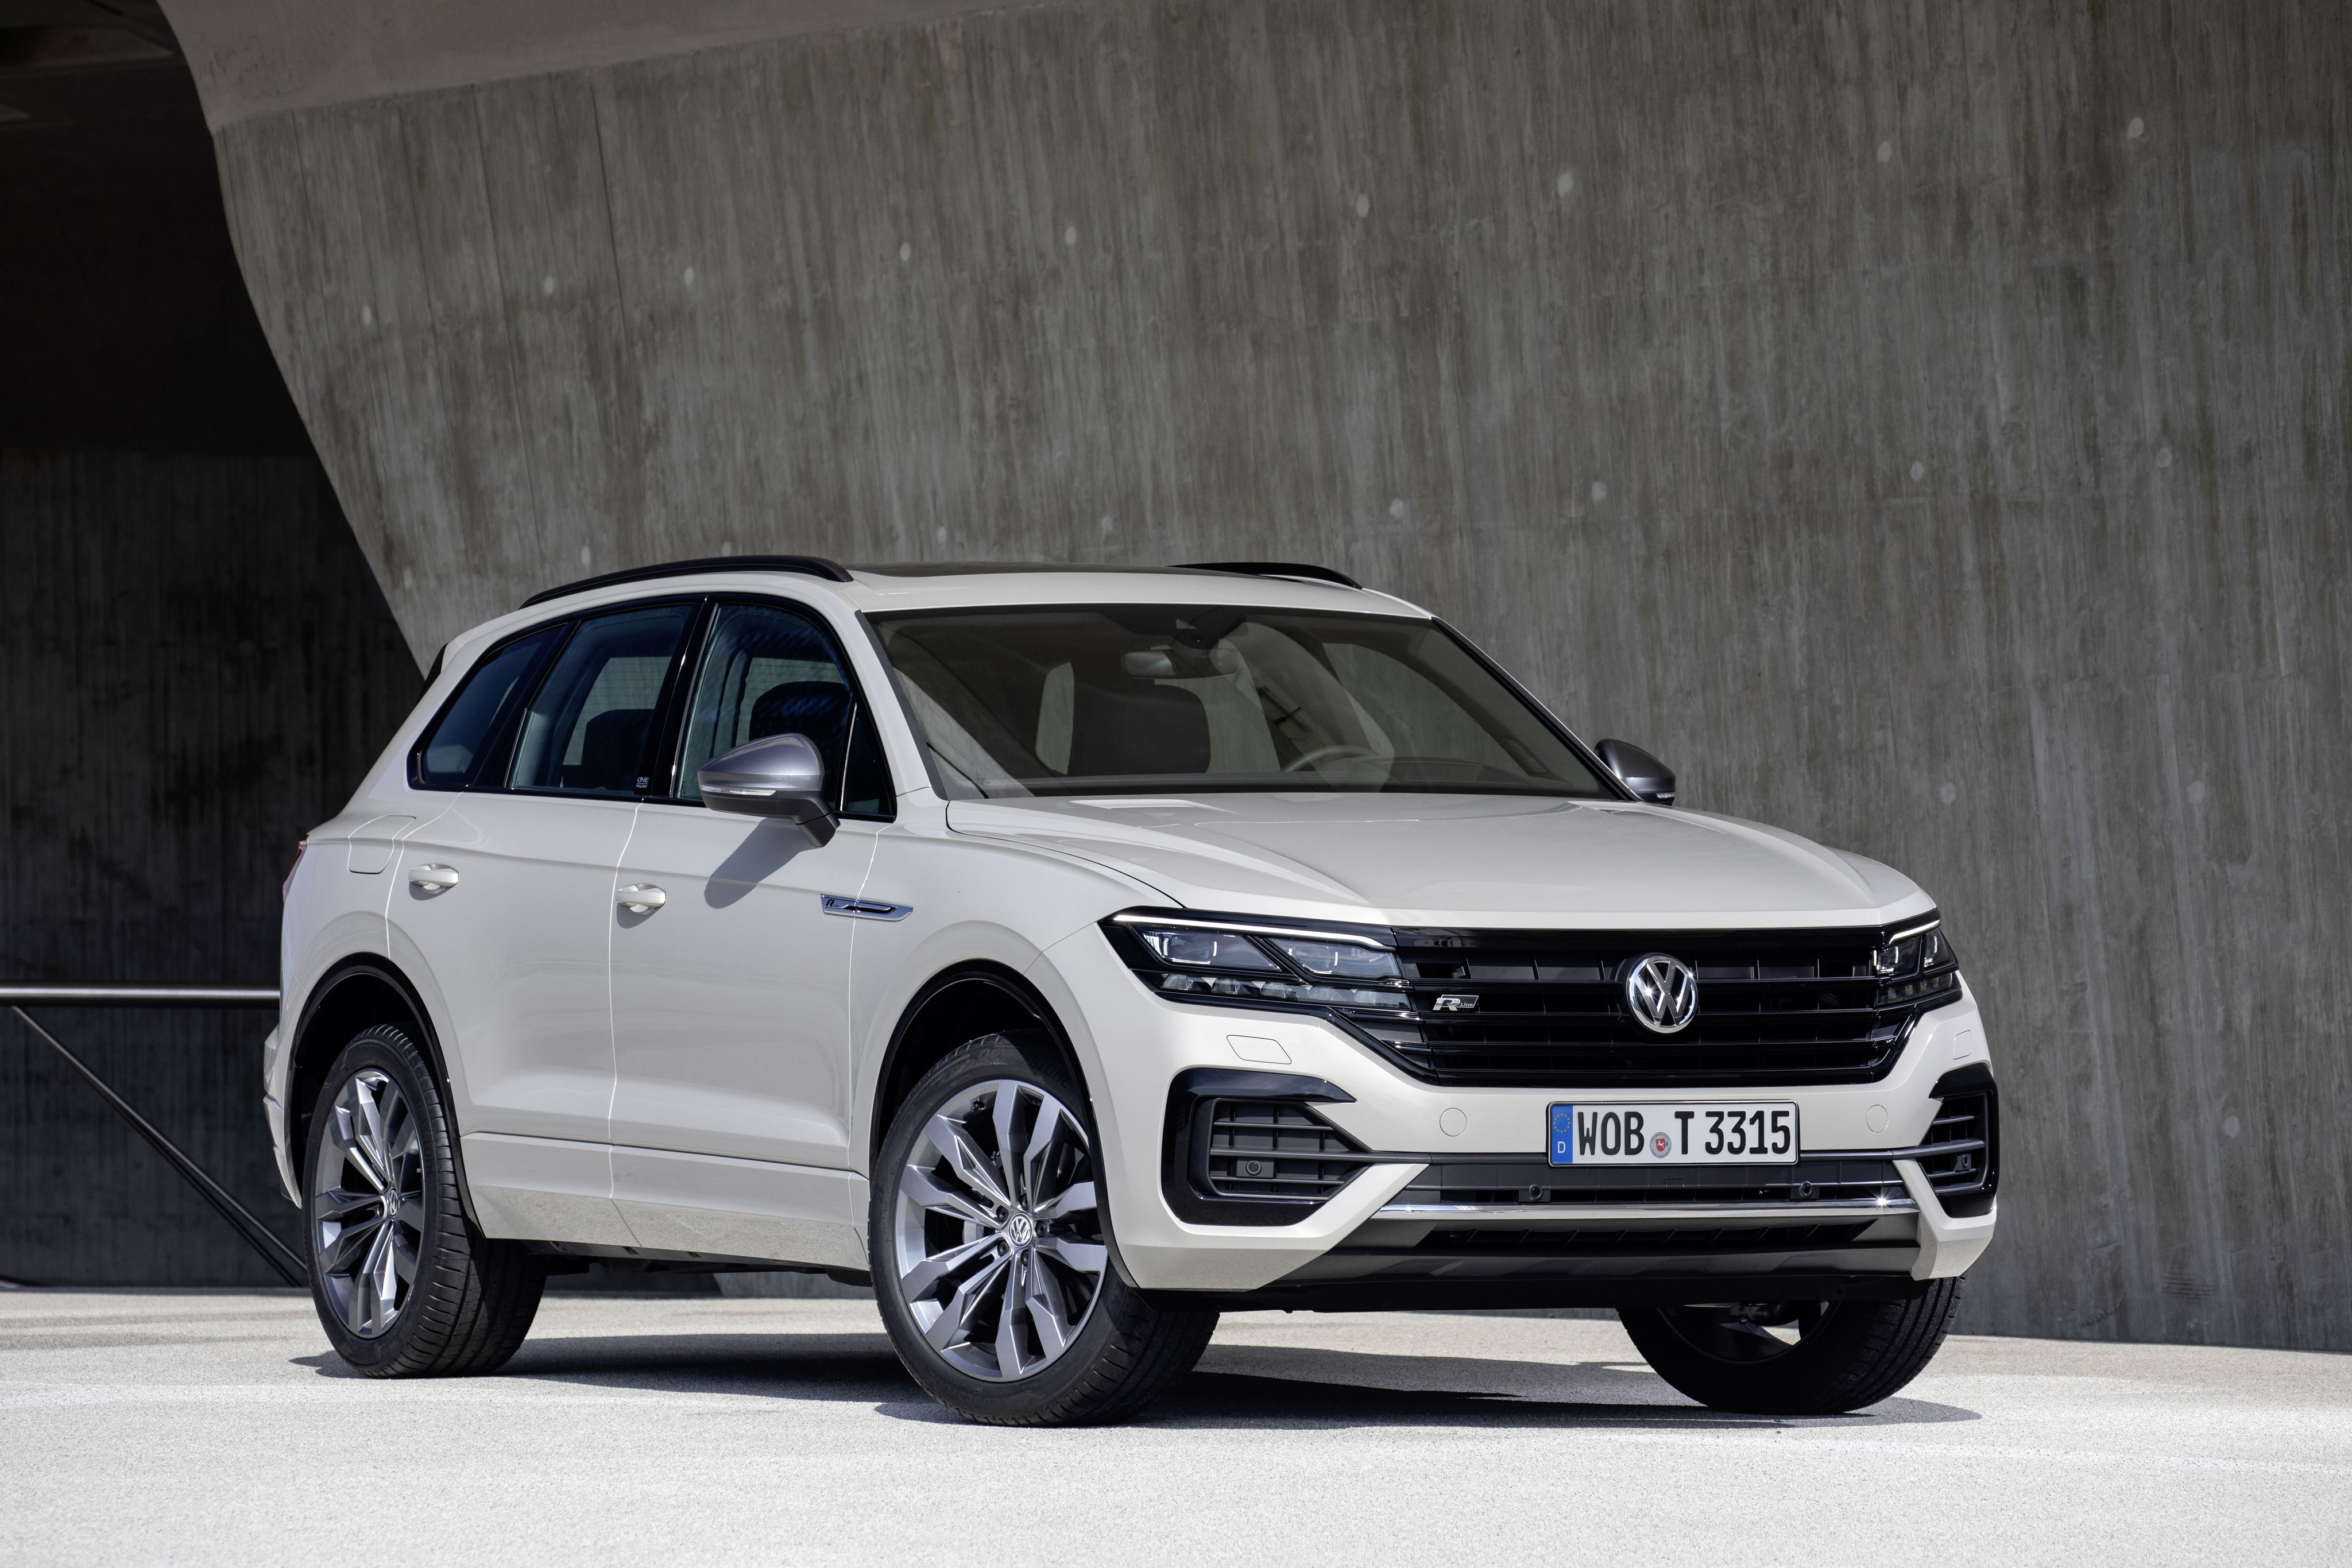 Volkswagen Wants To Take On Amg And Bmw M With A Hybrid 2021 Volkswagen Touareg R Vw Sharan Volkswagen Touareg Volkswagen